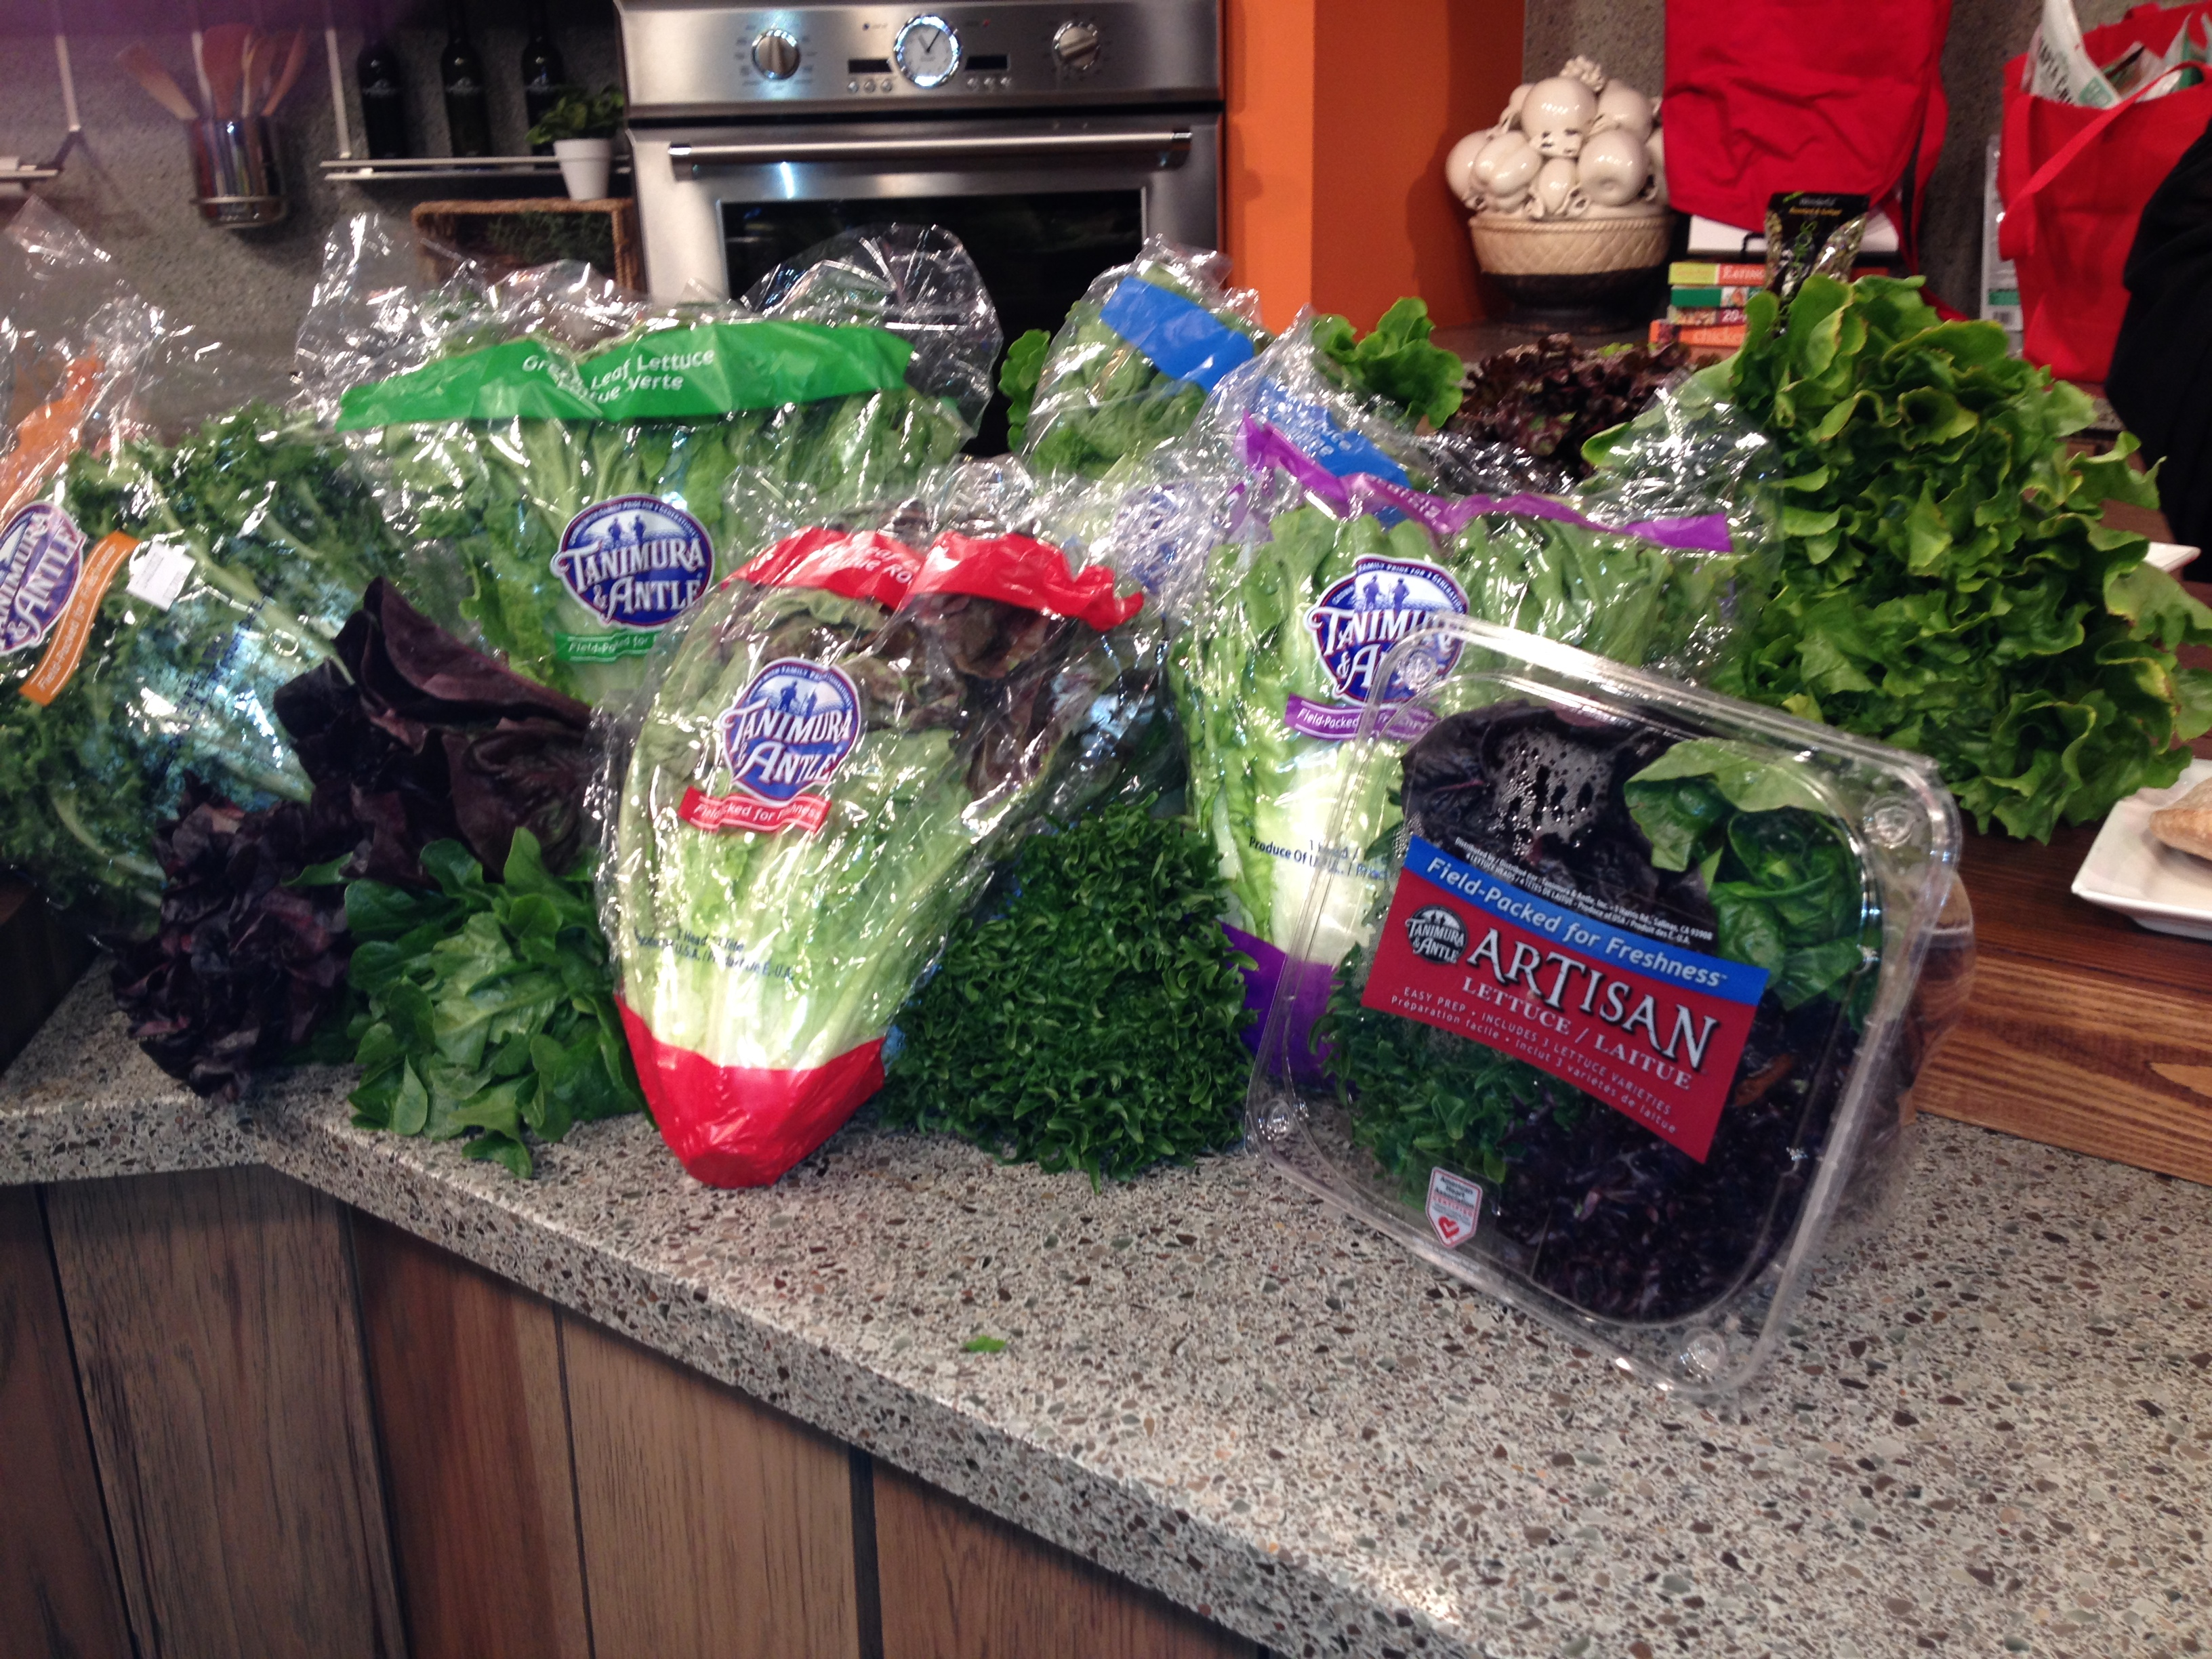 Artisan Lettuce Varieties Do You Know The Different Types